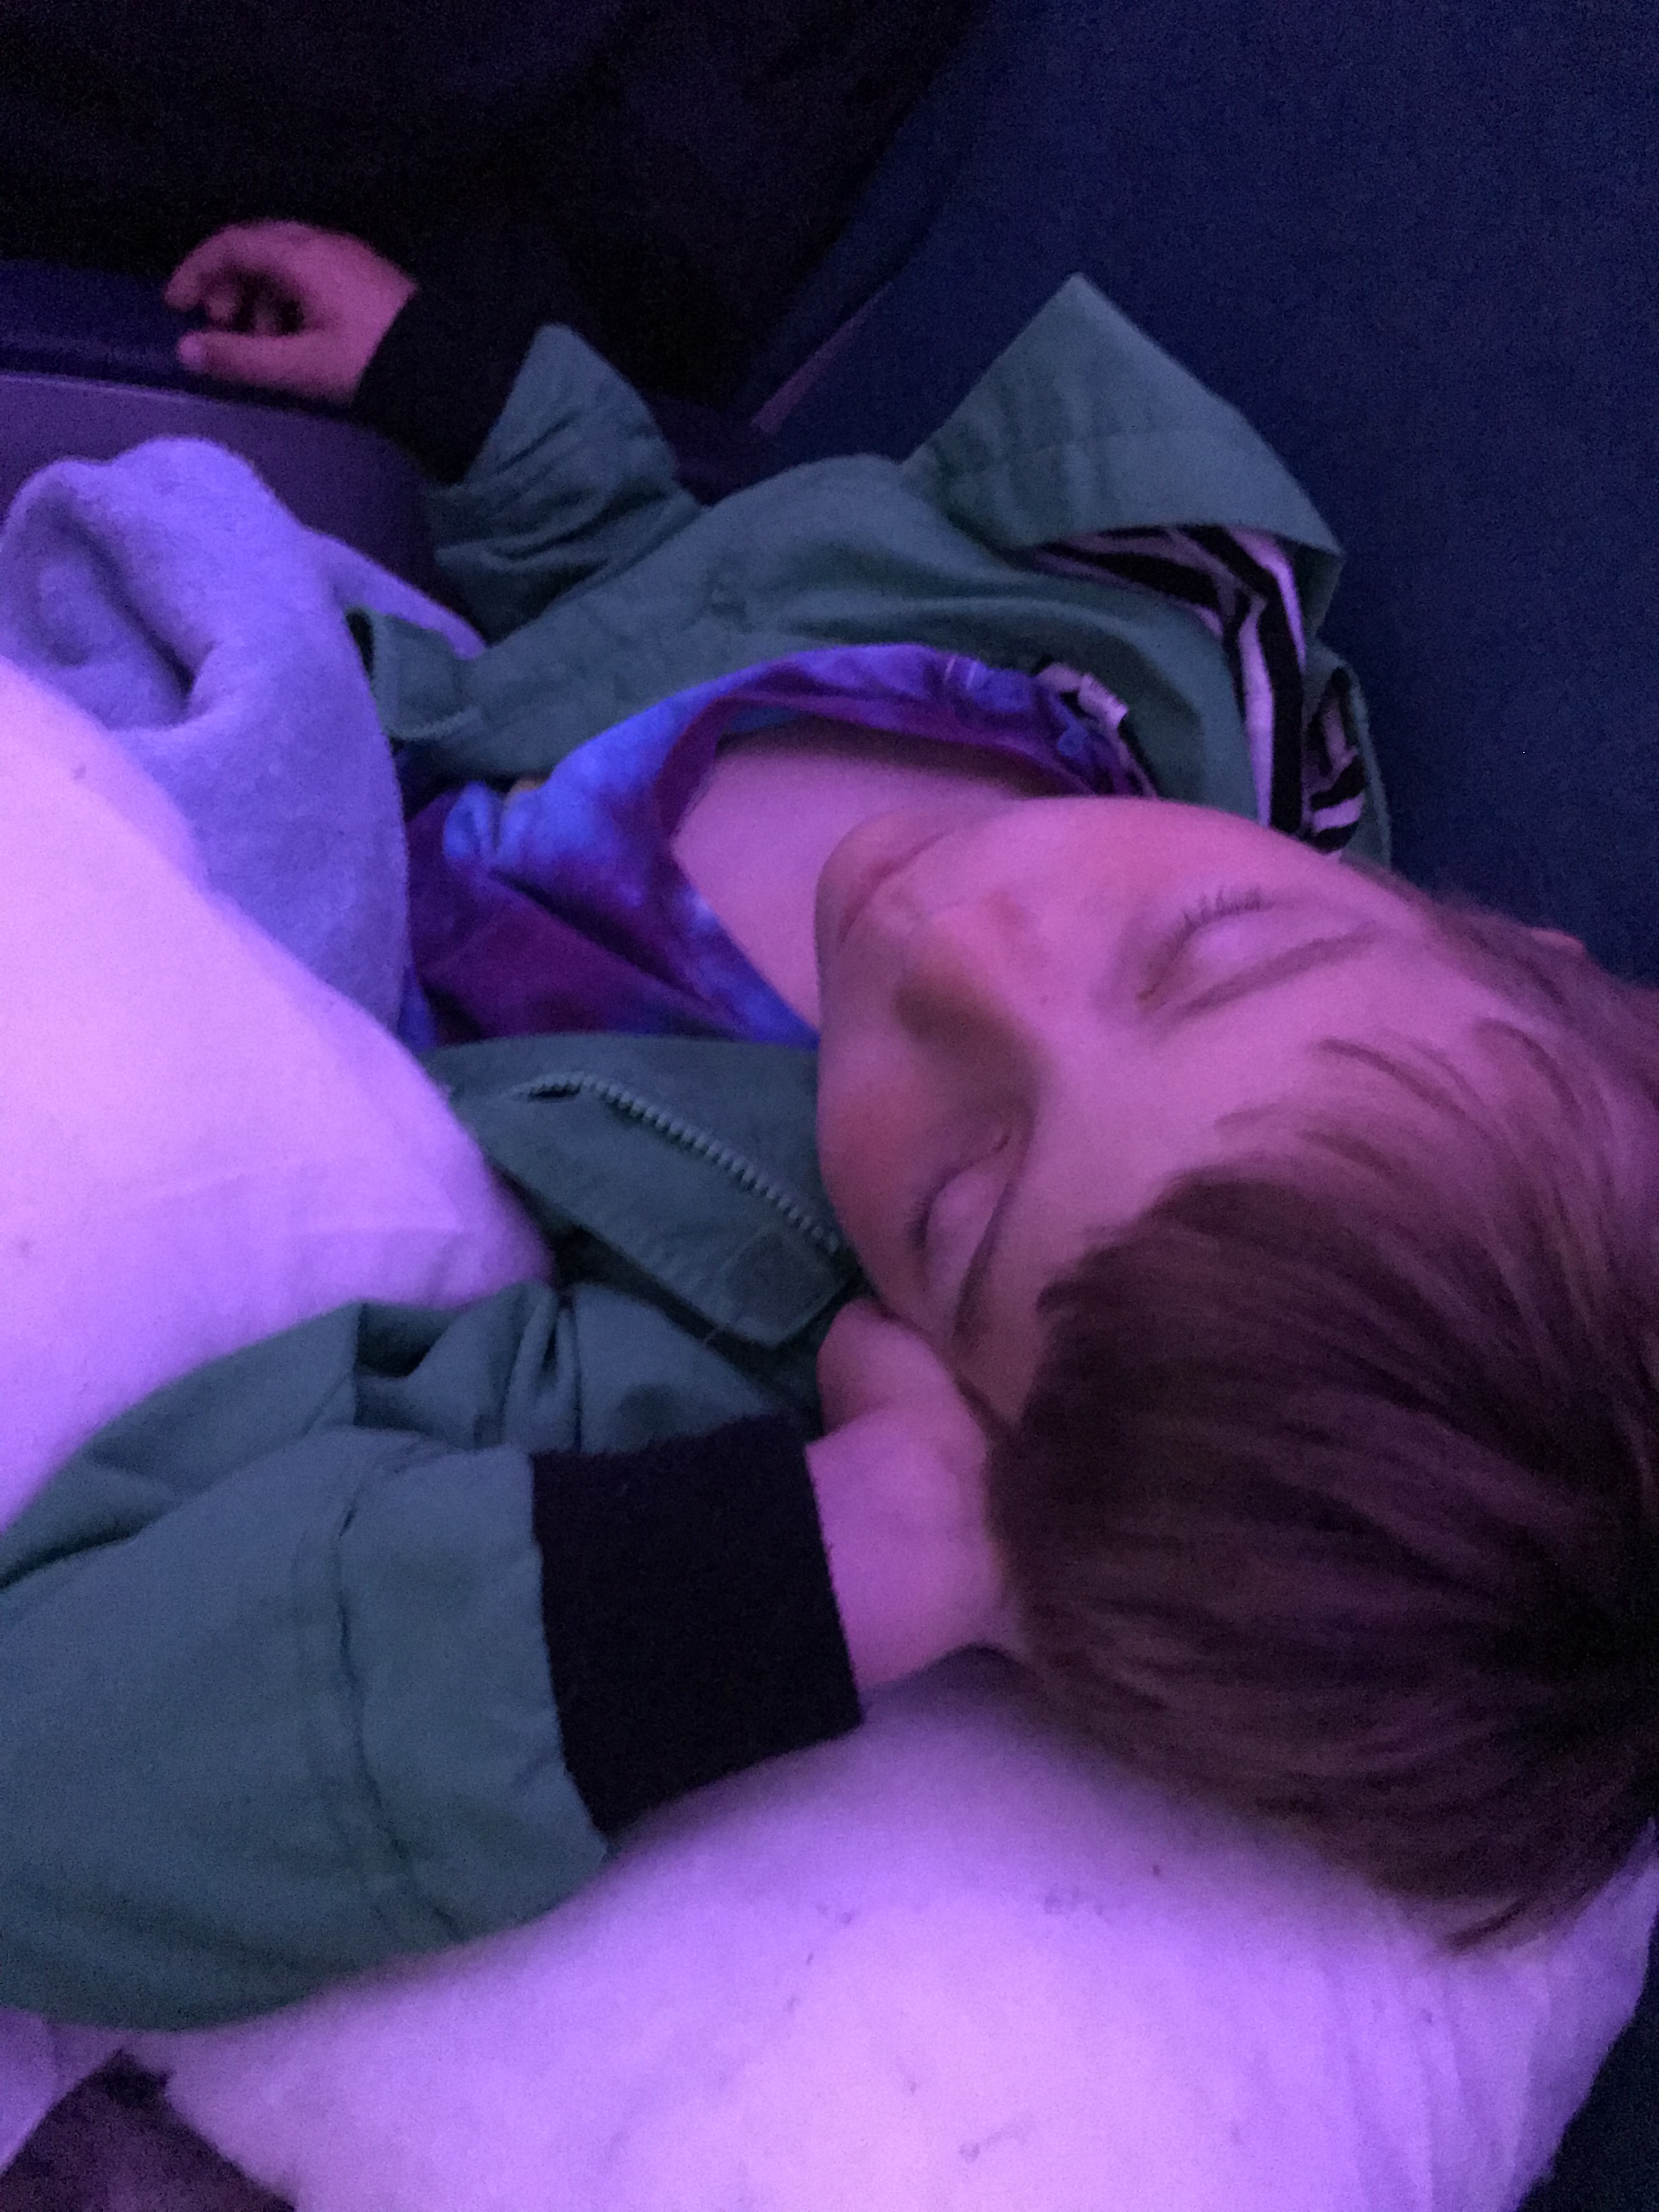 Child sleeping in an airplane seat